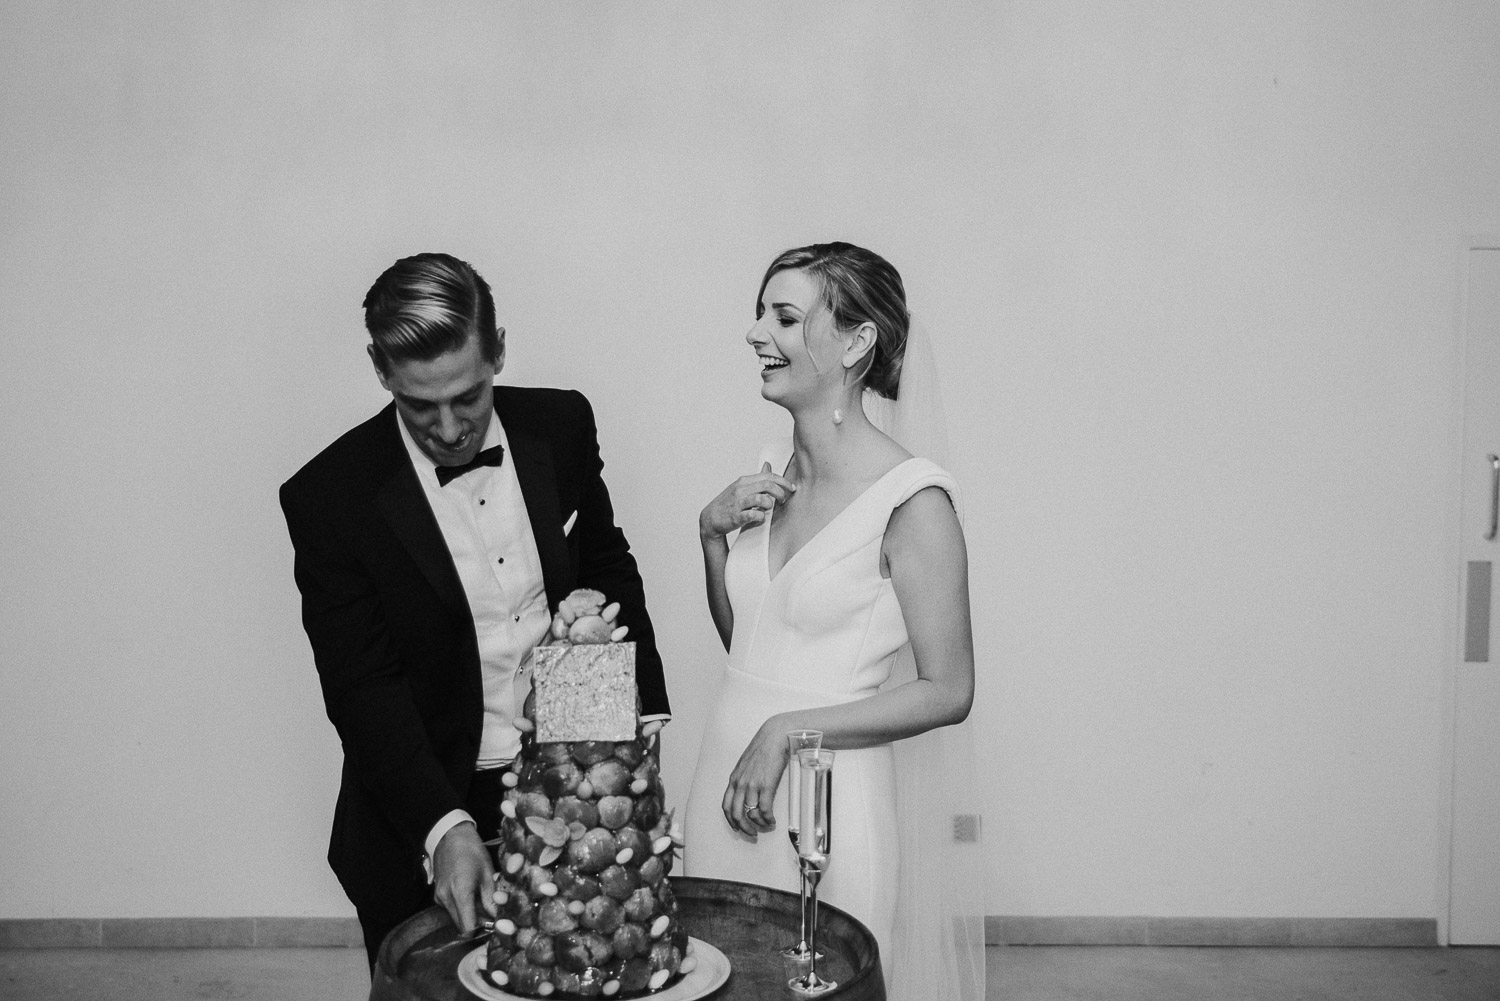 dordogne_eymet_wedding_france_katy_webb_photography_france_UK125